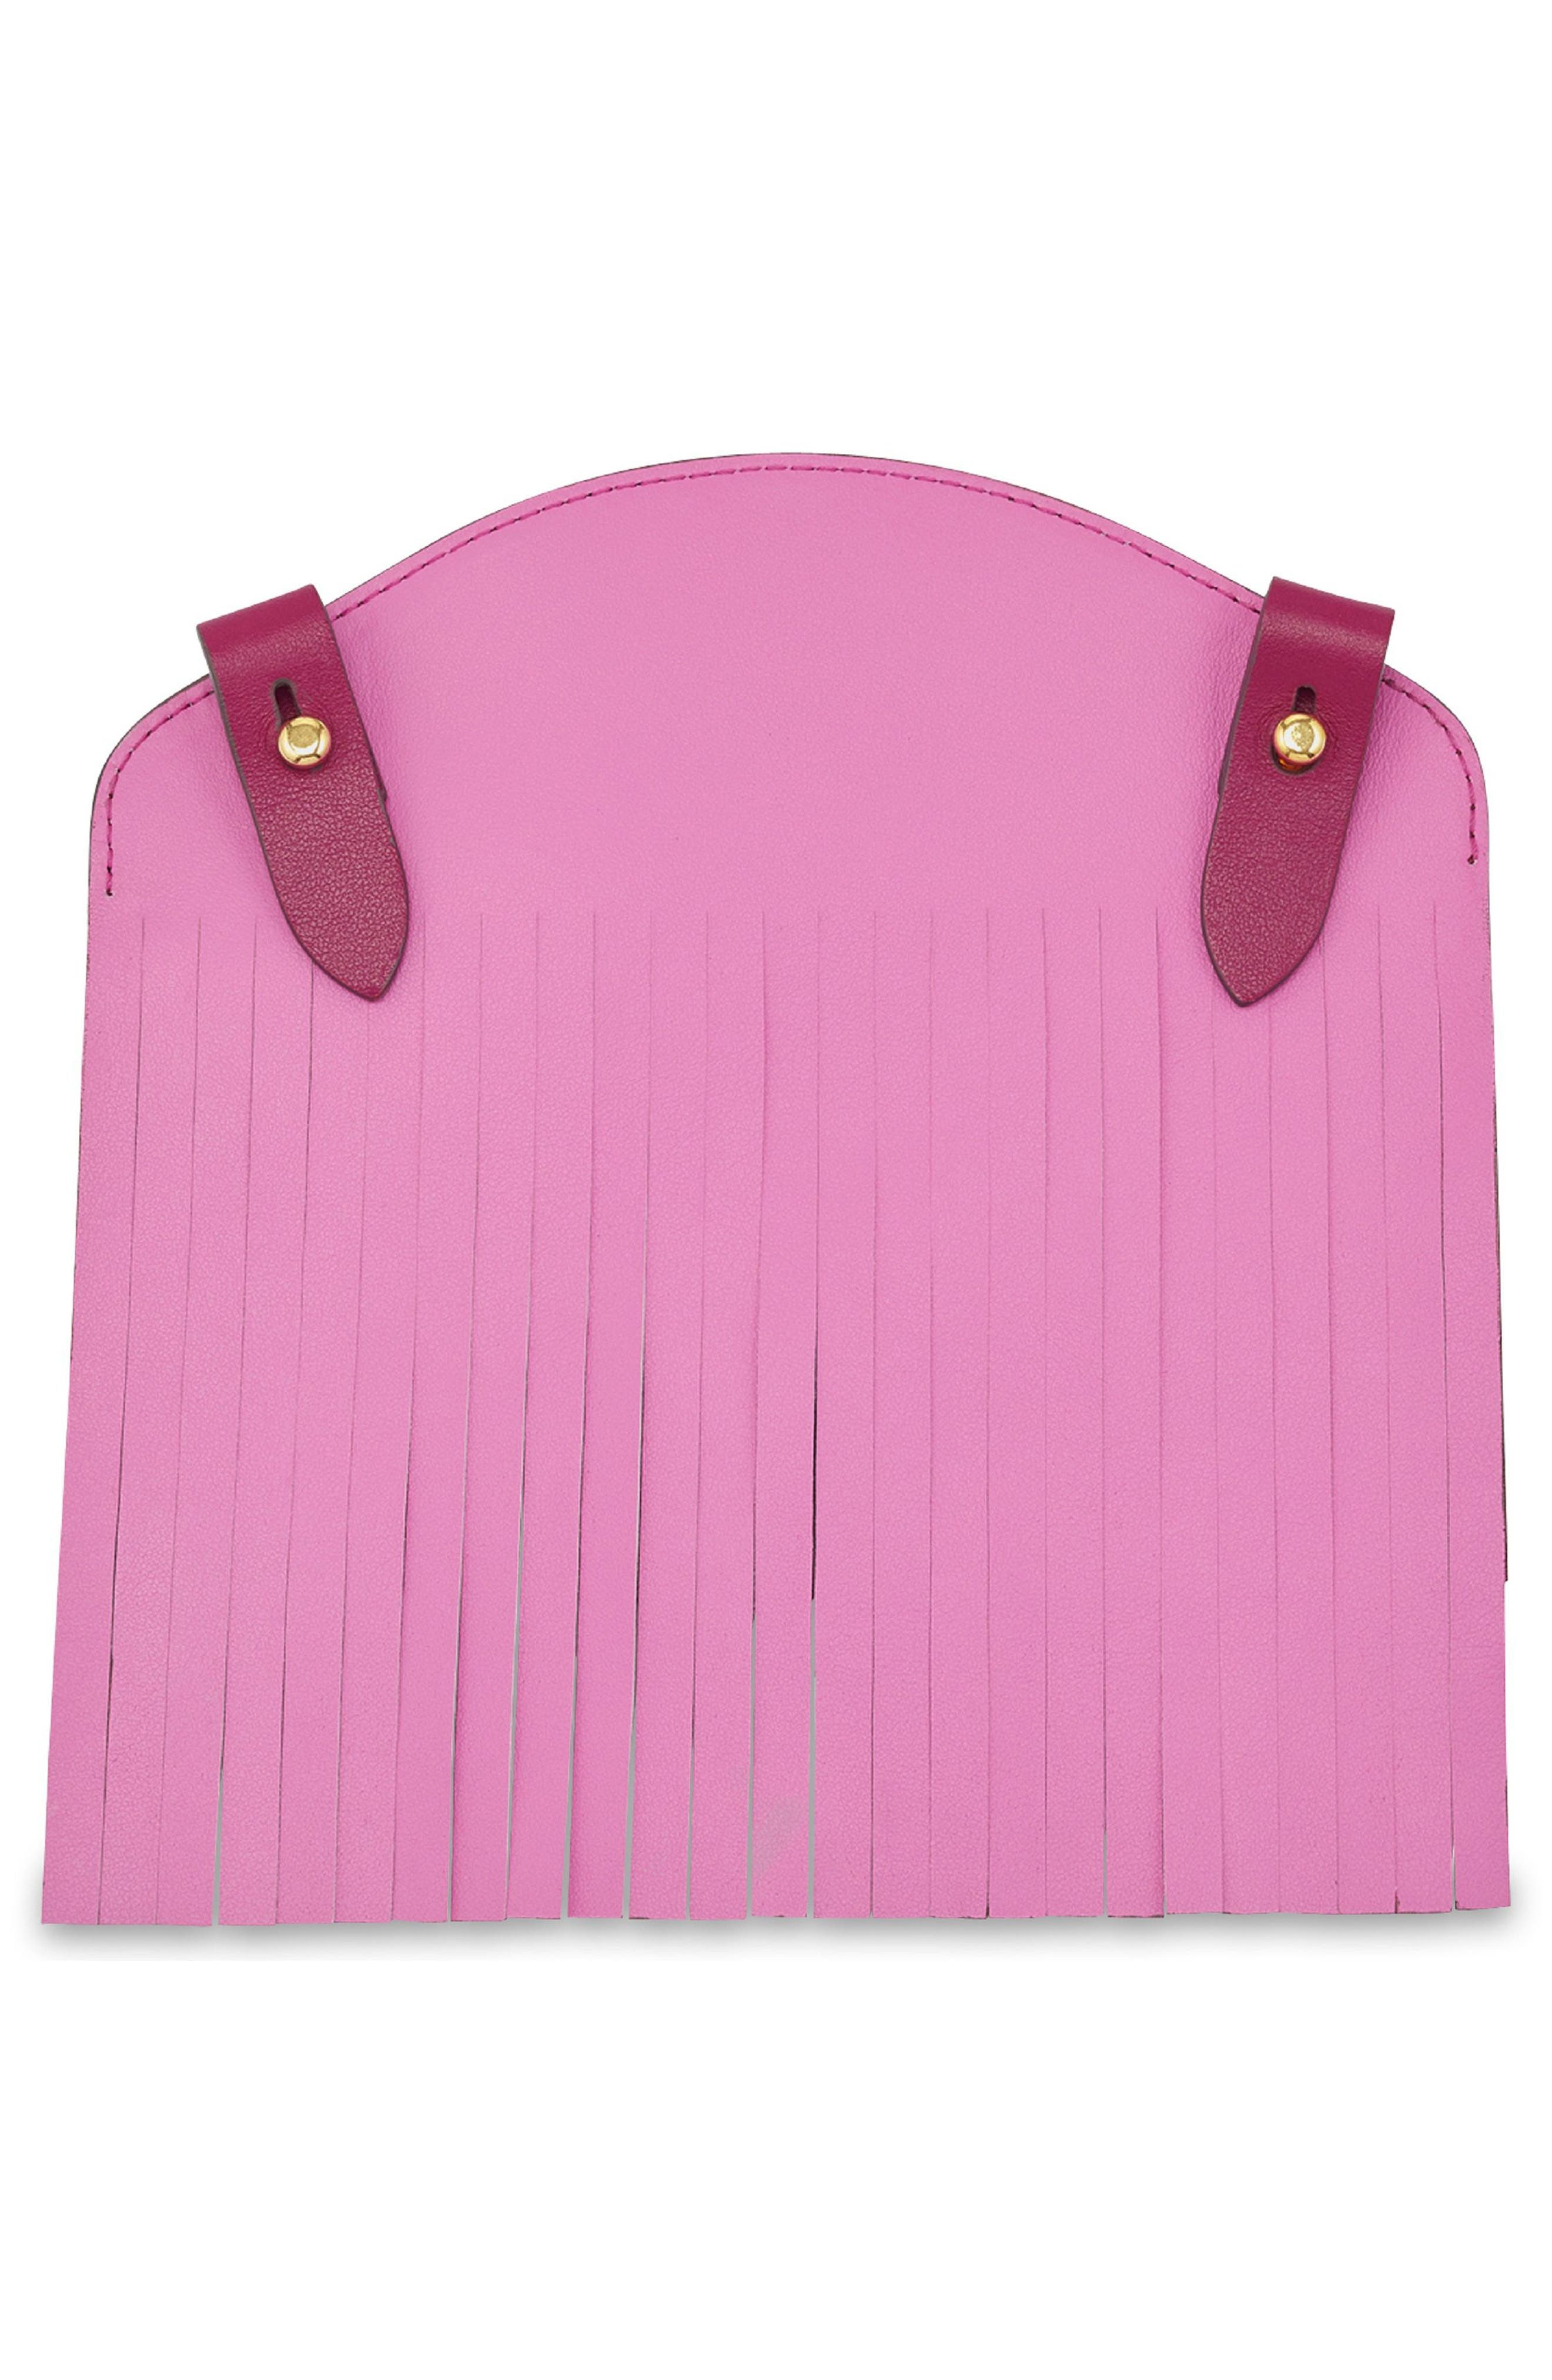 Build a Bag Fringe Leather Panels,                             Alternate thumbnail 5, color,